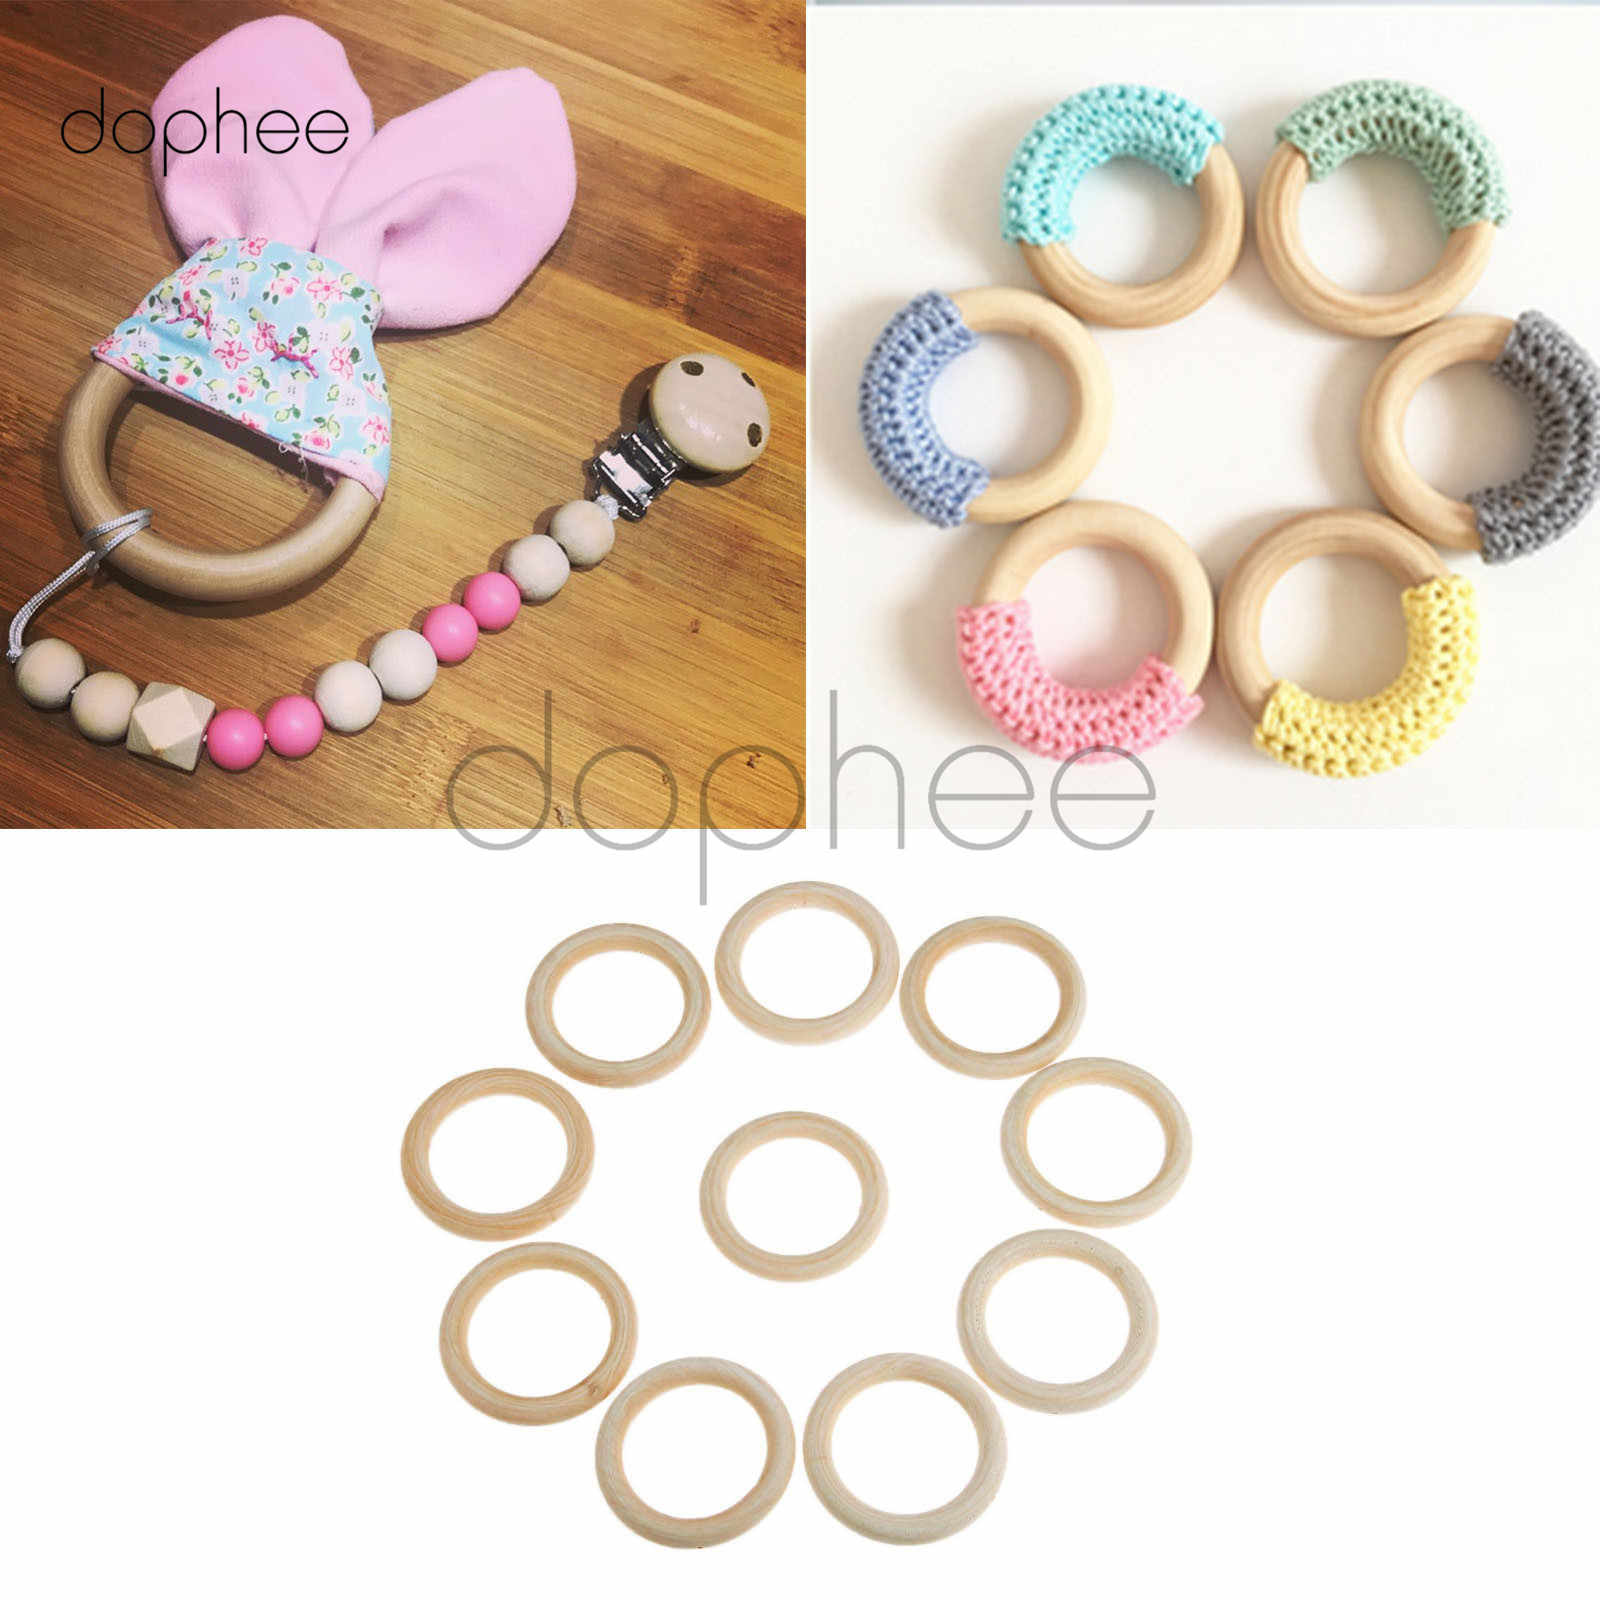 dophee 10pcs 70mm Natural Wooden Rings Unfinished Baby Teething Ring Pendant Pacifier Holders For DIY Babies Teething Toys